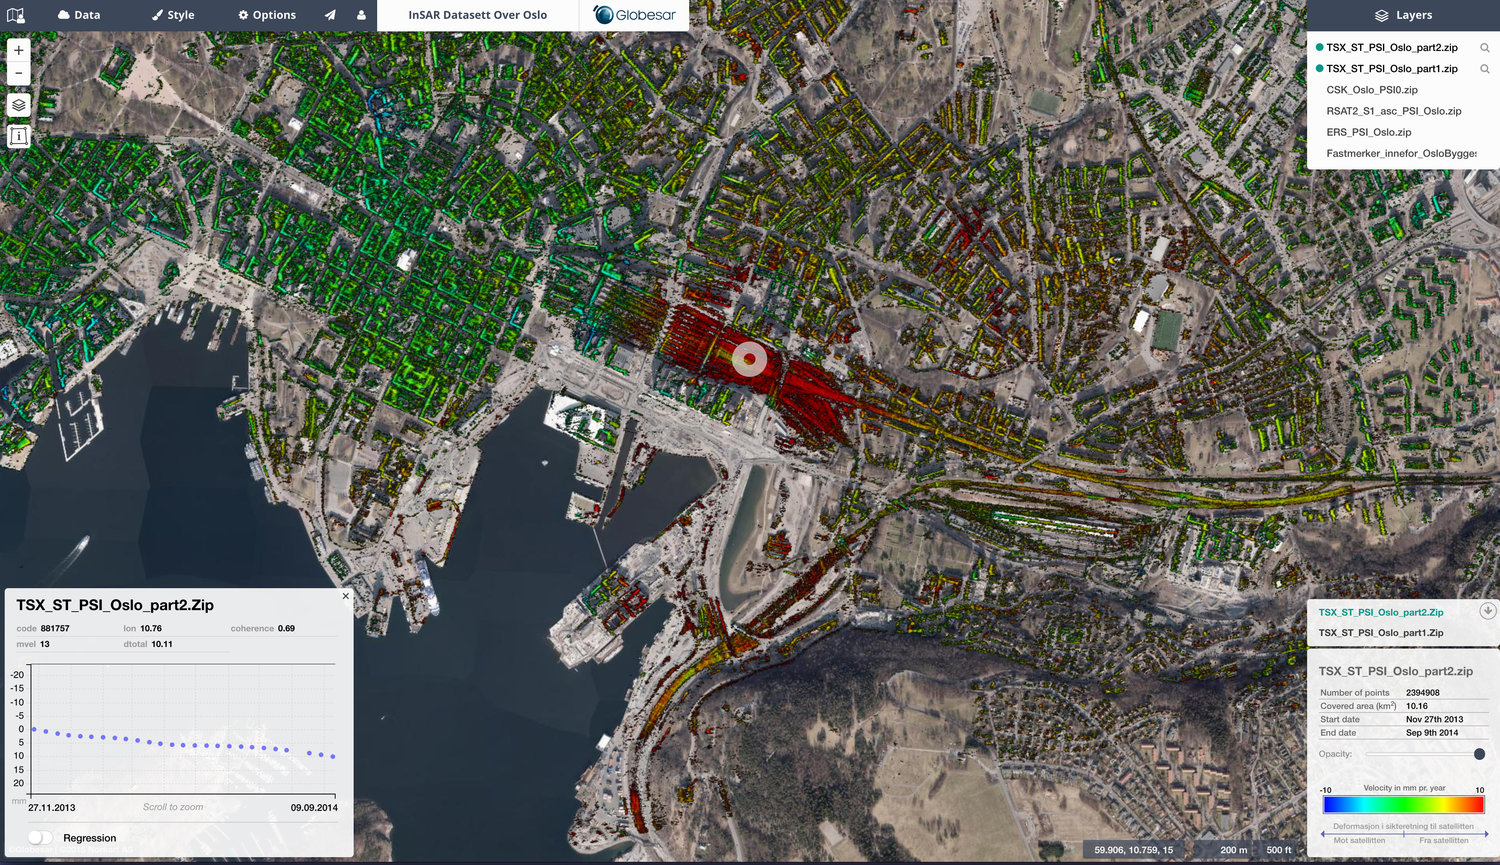 Mapic - a GIS service